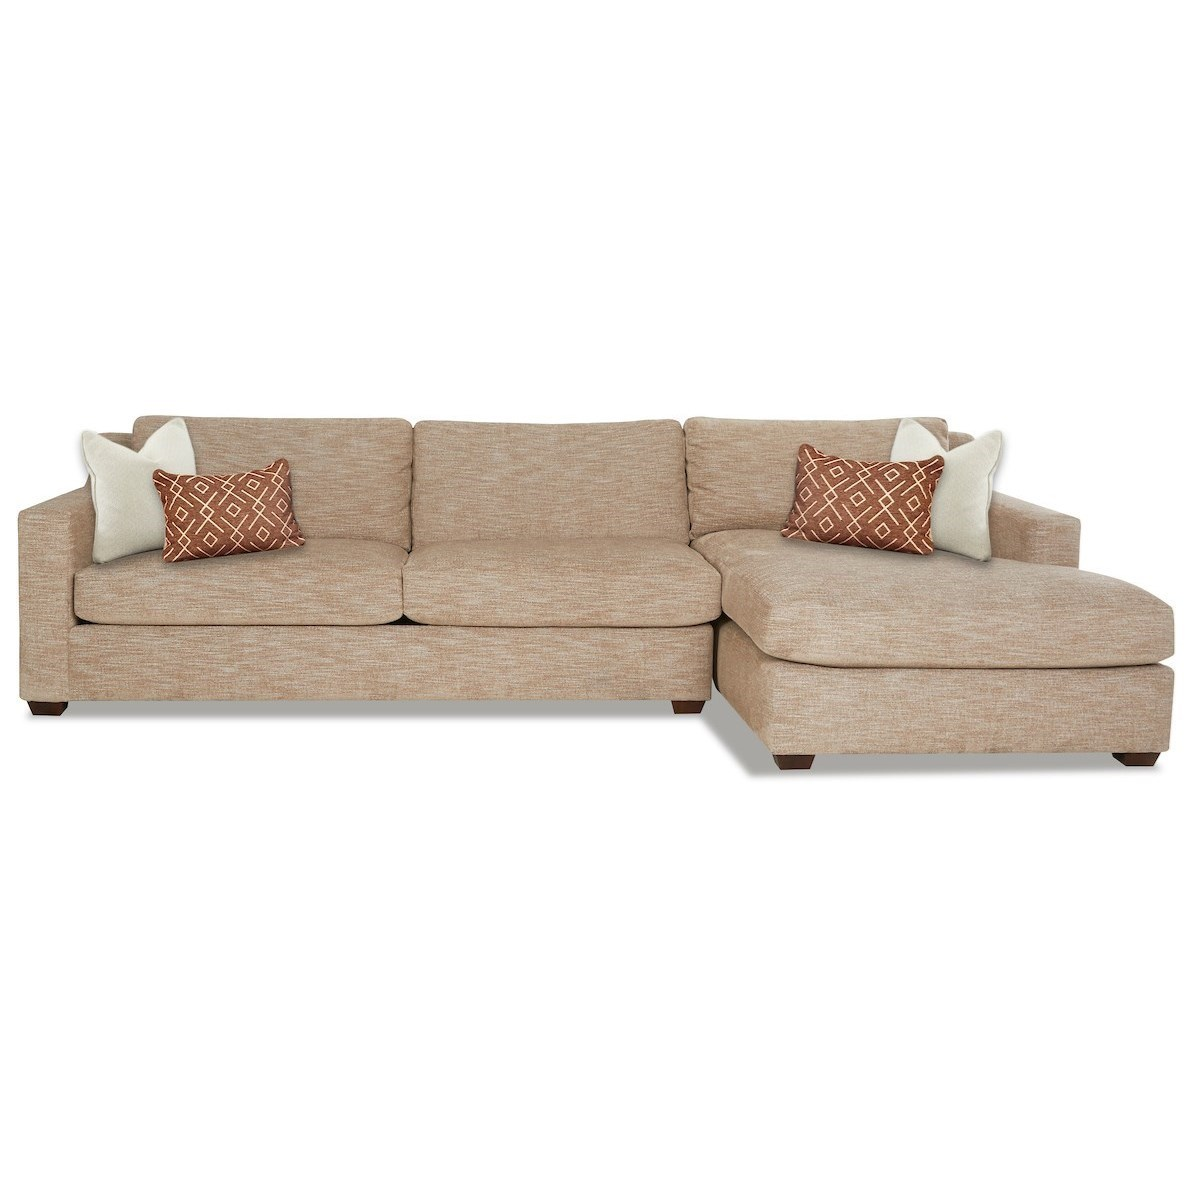 3-Seat Chaise Sofa with Down Blend Cushions and RAF Chaise Lounge